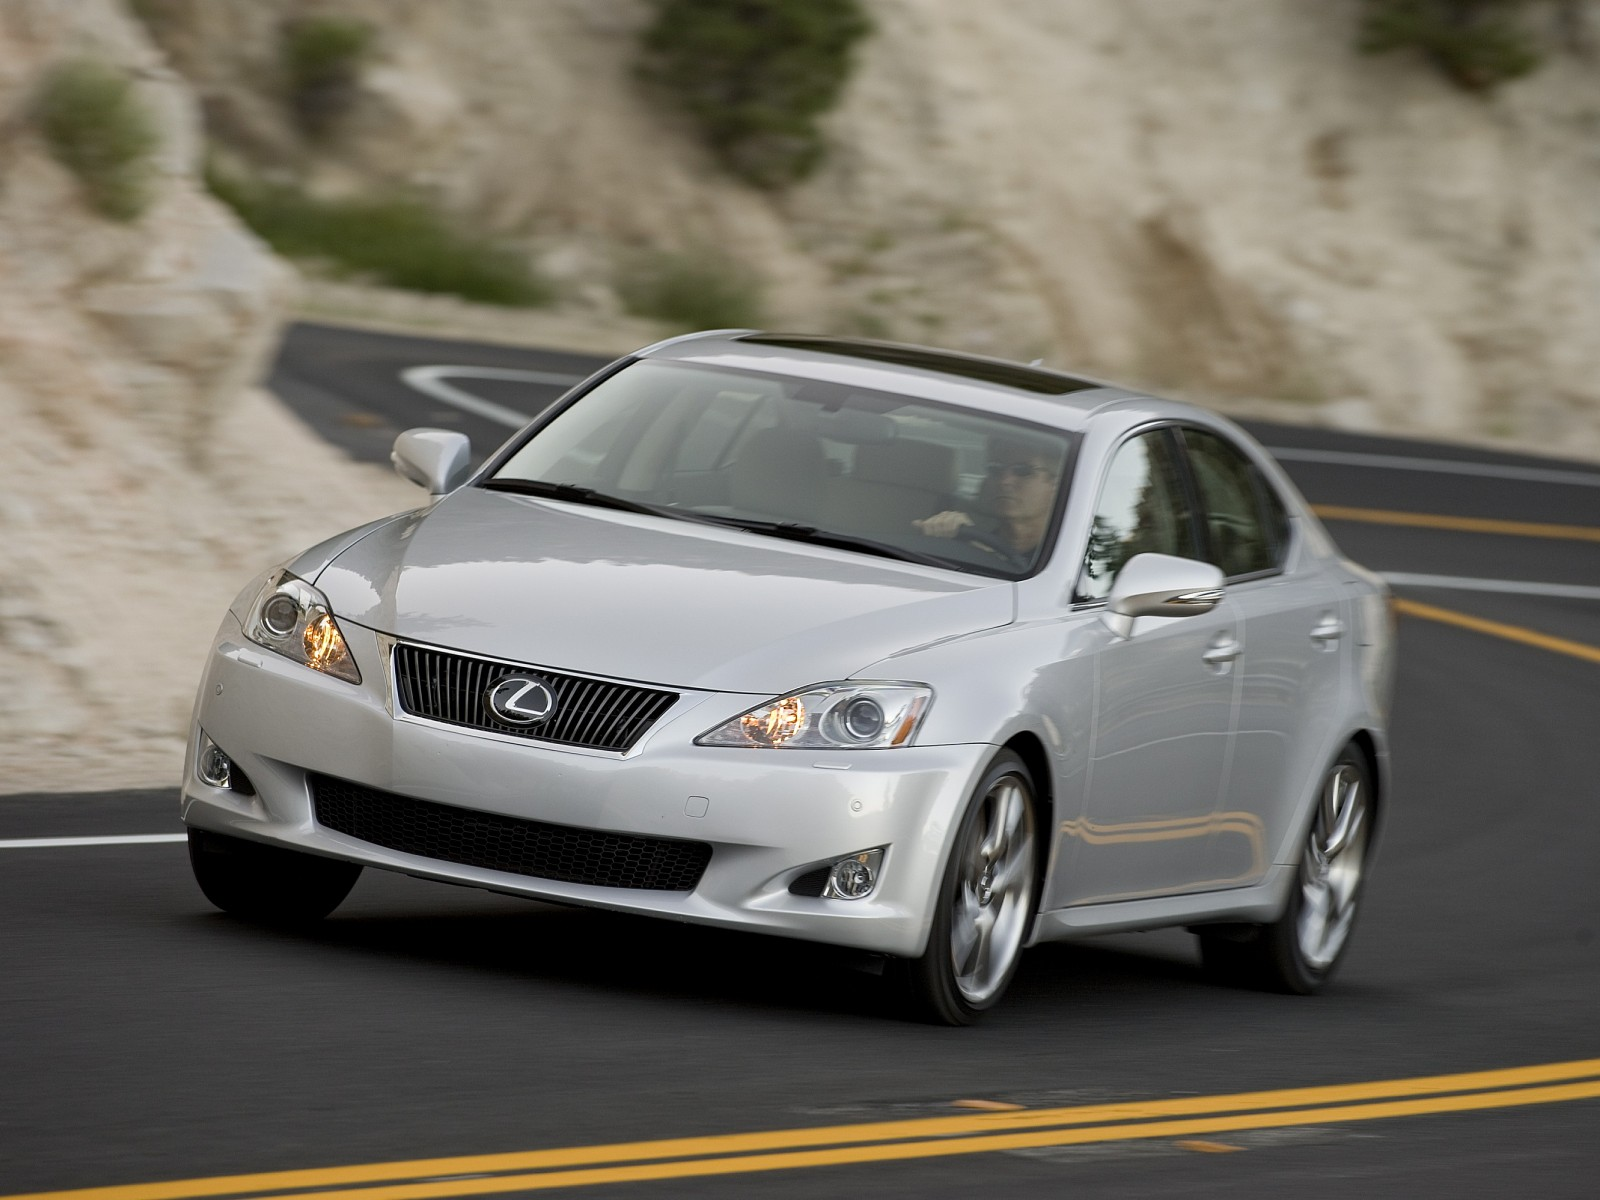 http://www.motordesktop.com/pictures/lexus/2009-lexus-is-350/2009-Lexus-IS-350-05-1600x1200.jpg